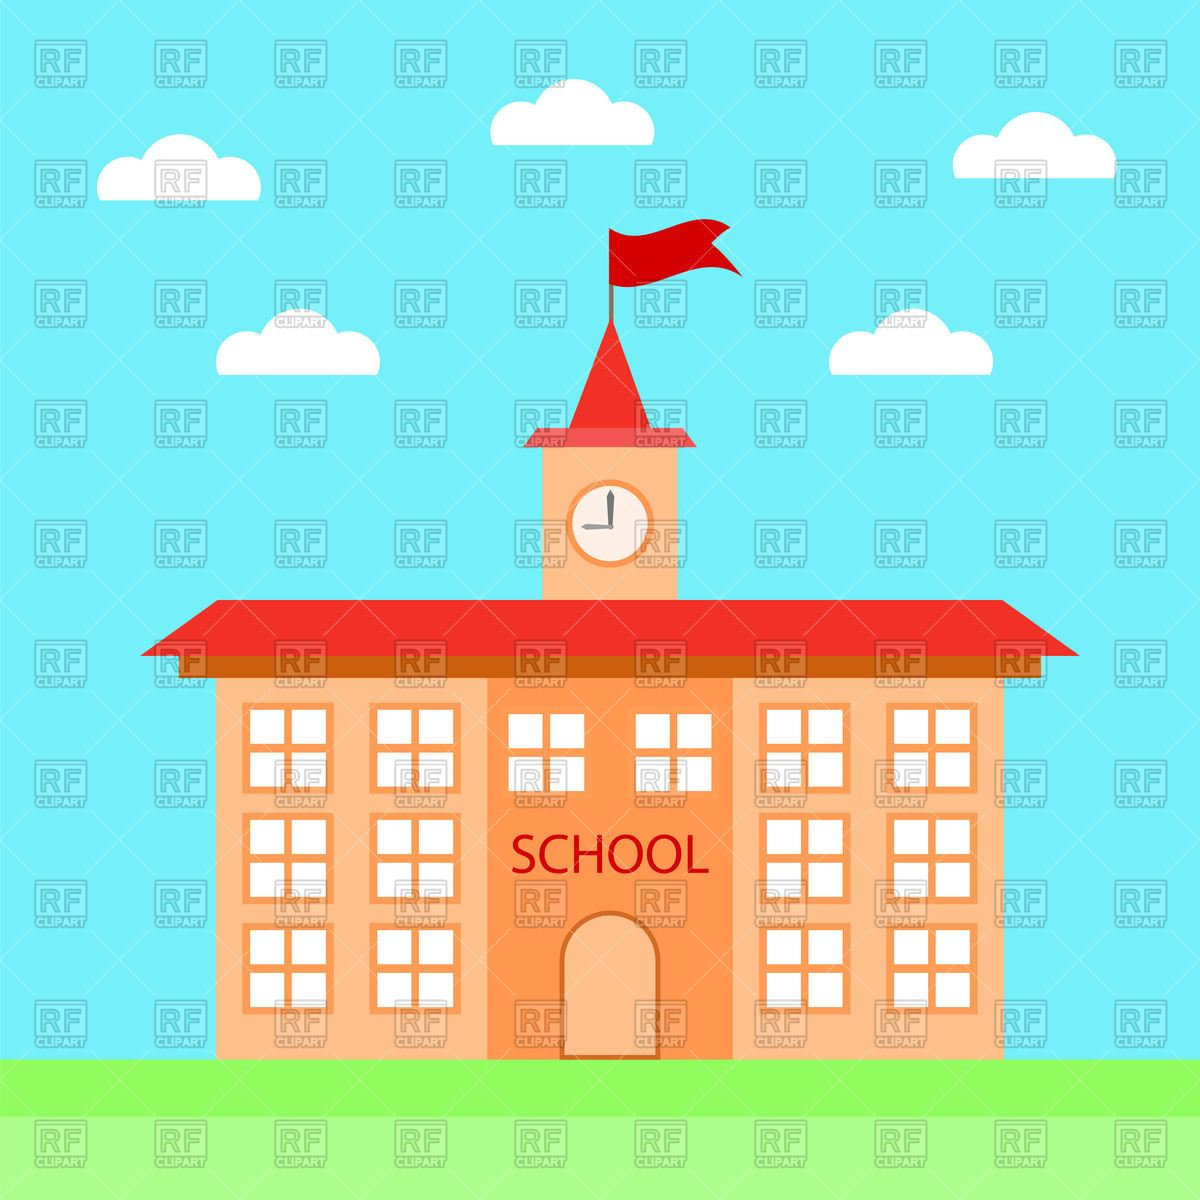 school-building-Download-Royalty-free-Vector-File-EPS-182491